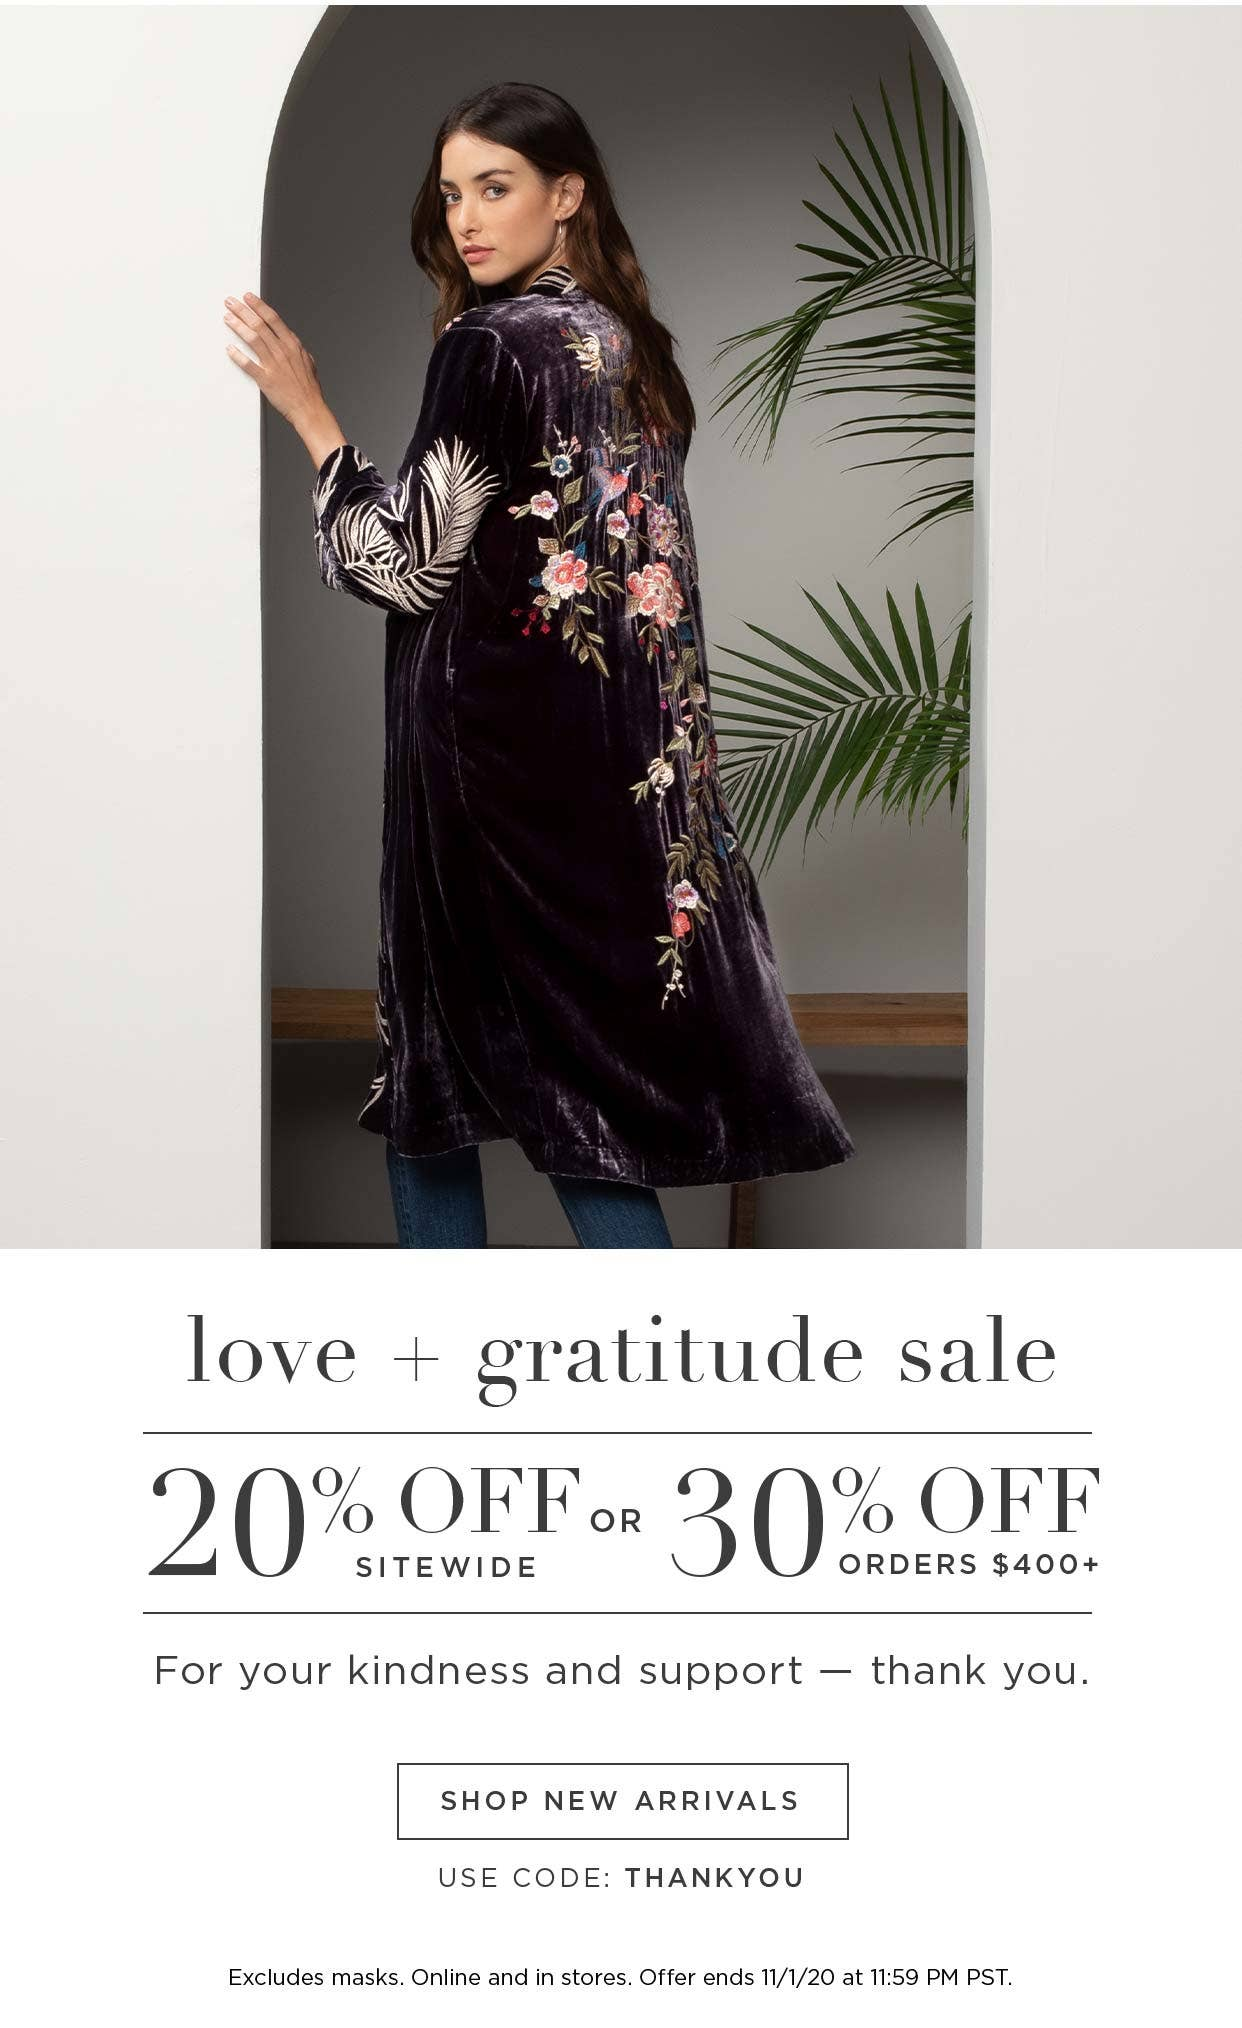 Love + Gratitude Sale - 20% off Sitewide or 30% off Orders $400+ - Thank you for your kindness and support - Thank You - Shop New Arrivals. Use code: THANKYOU - Excludes masks. Online and in stores. Offer ends 11/1/20 at 11:59pm PST.